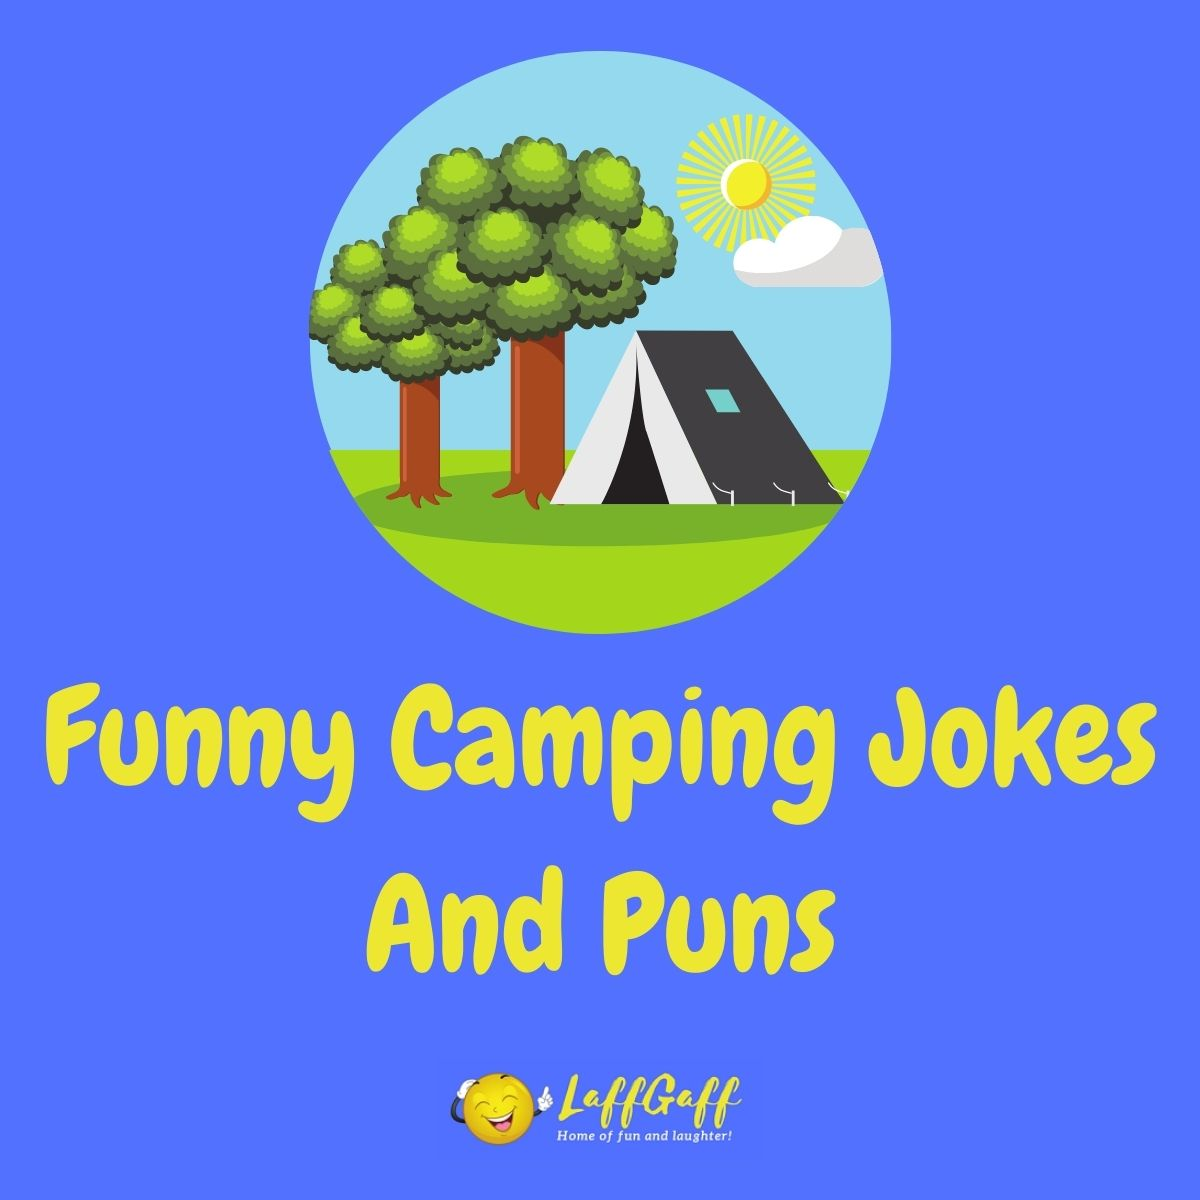 Featured image for a page of funny camping jokes and puns.